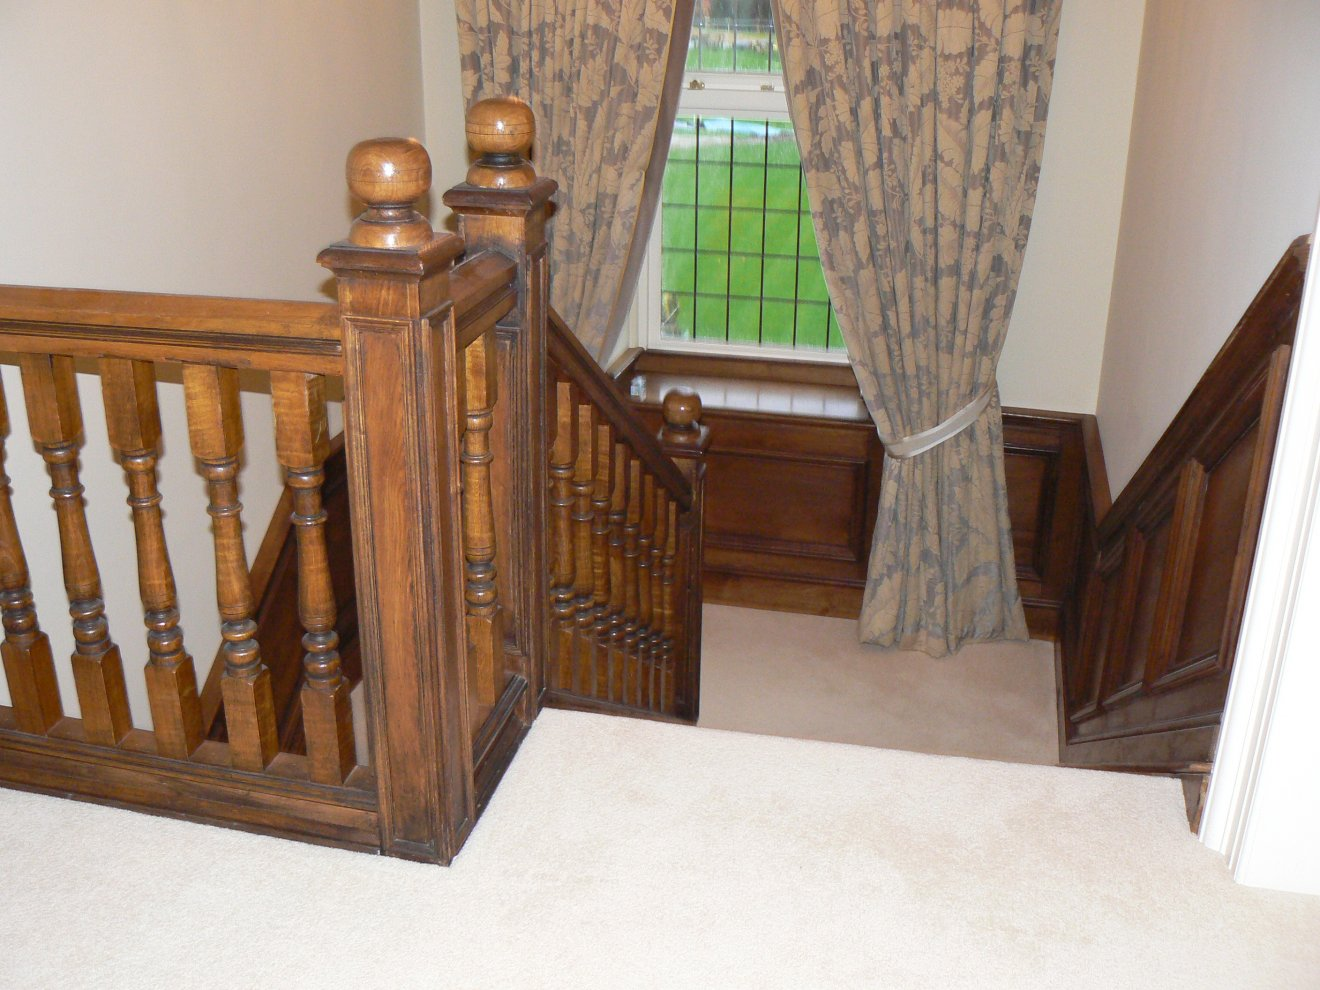 Solid Oak Staircase With Ornate Finials And A Sweeping Handrail